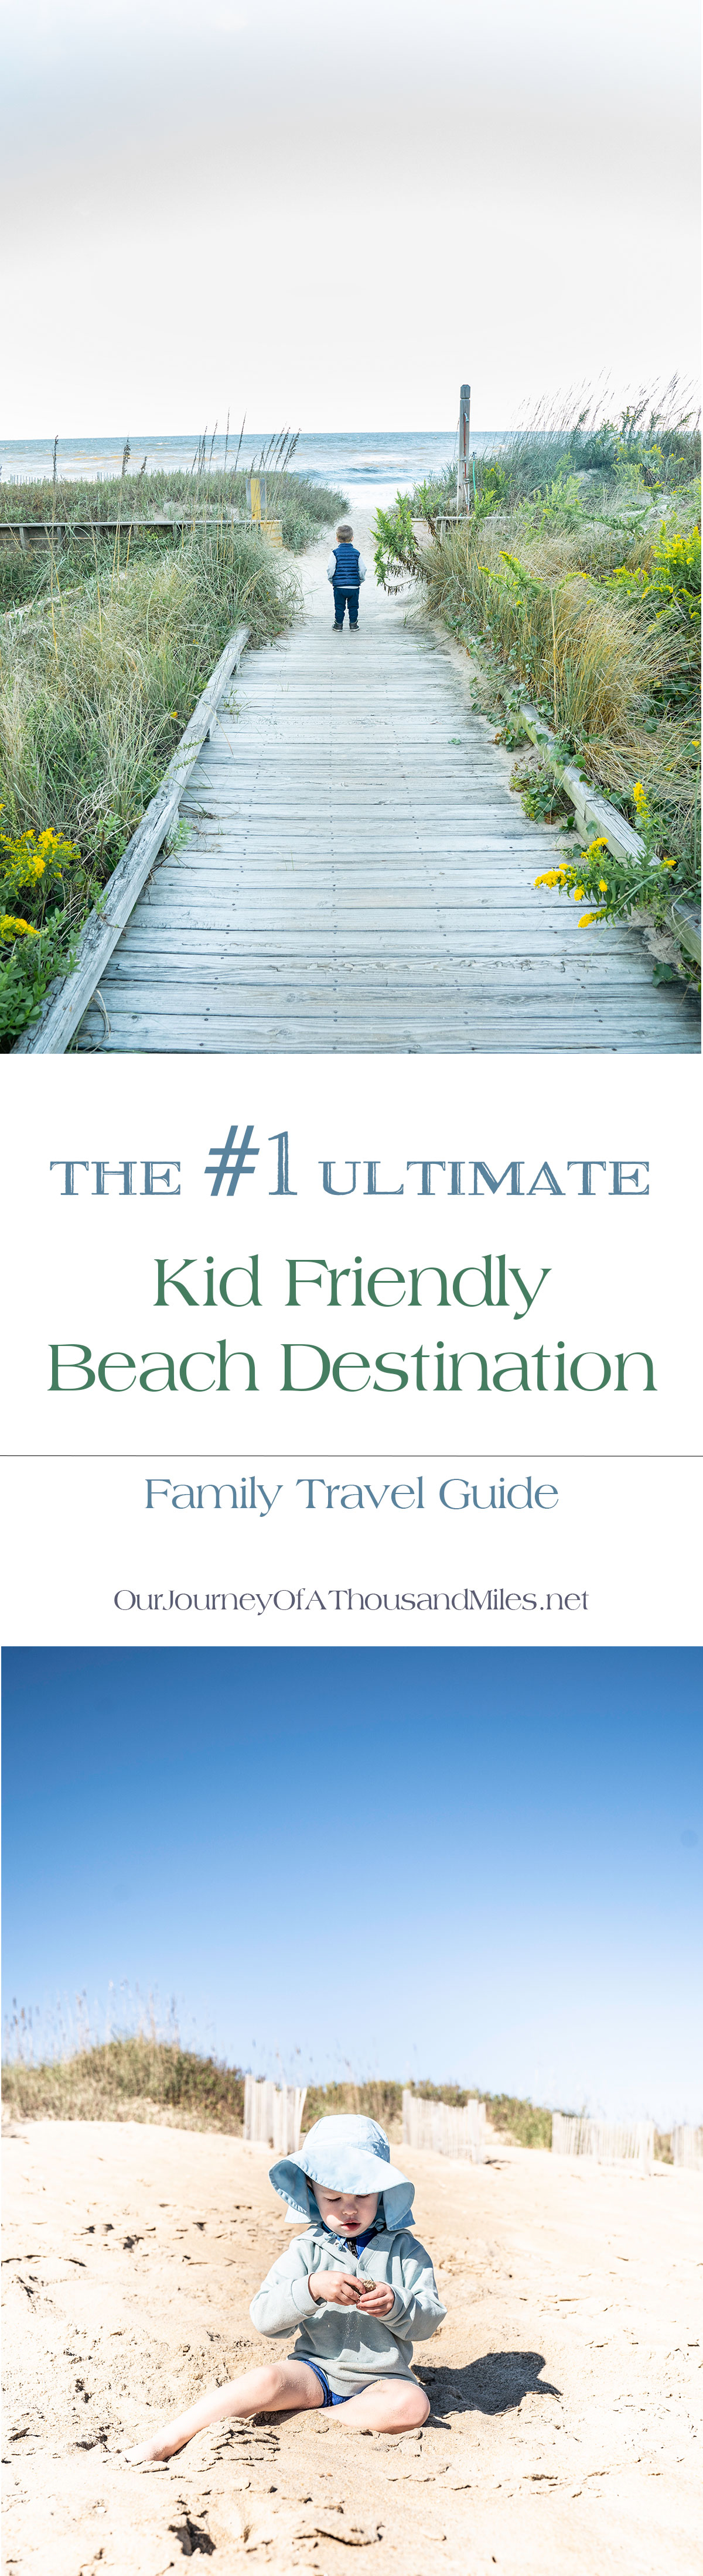 The-Ultimate-Kid-Friendly-Beach-Destination-For-Families-Travel-Guide